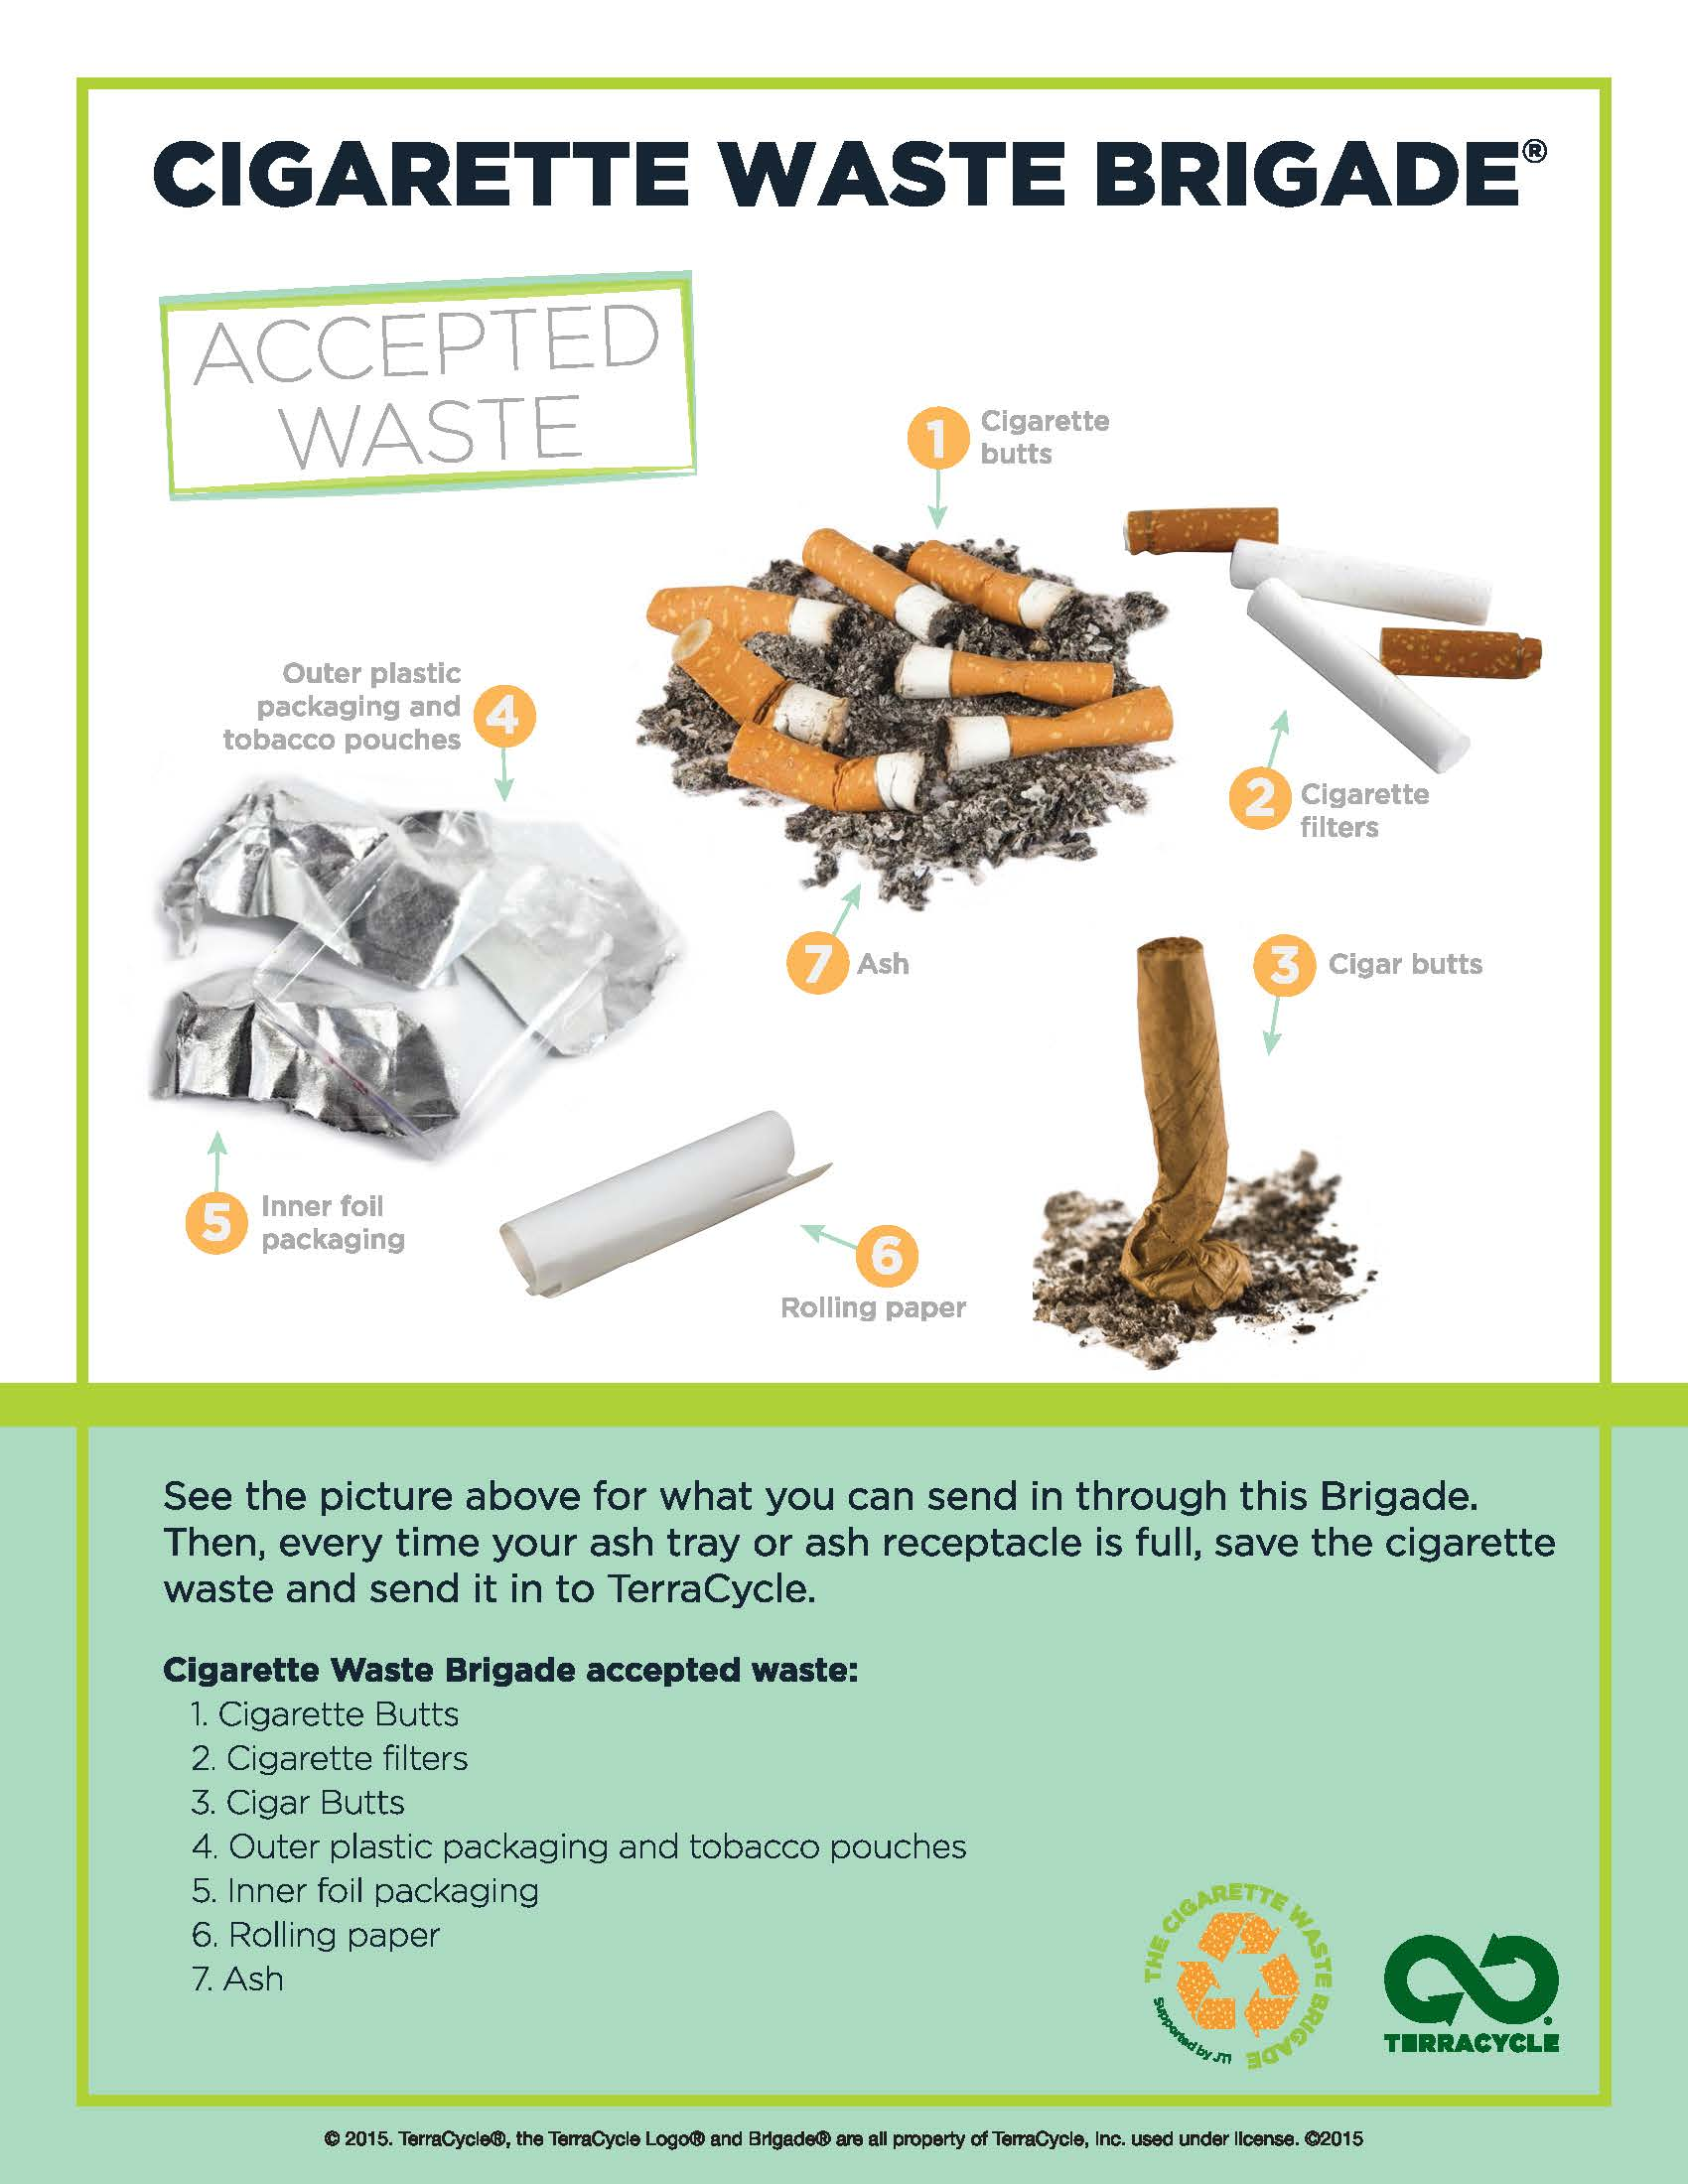 Cigarette waste